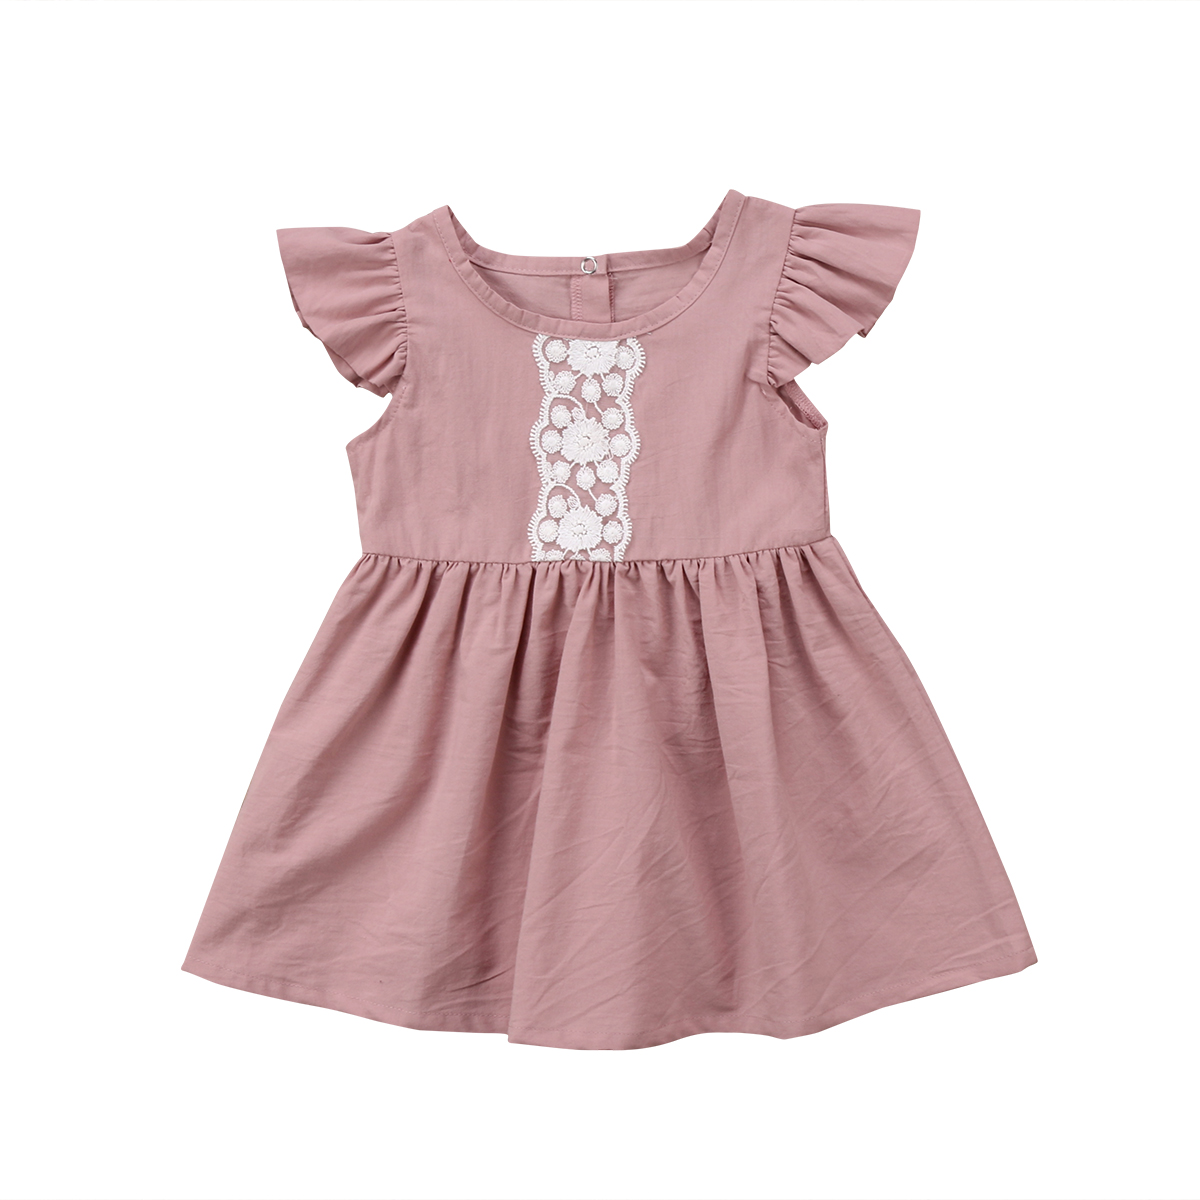 Toddler Baby Girls Clothes Dresses Newborn Kids Infant ...